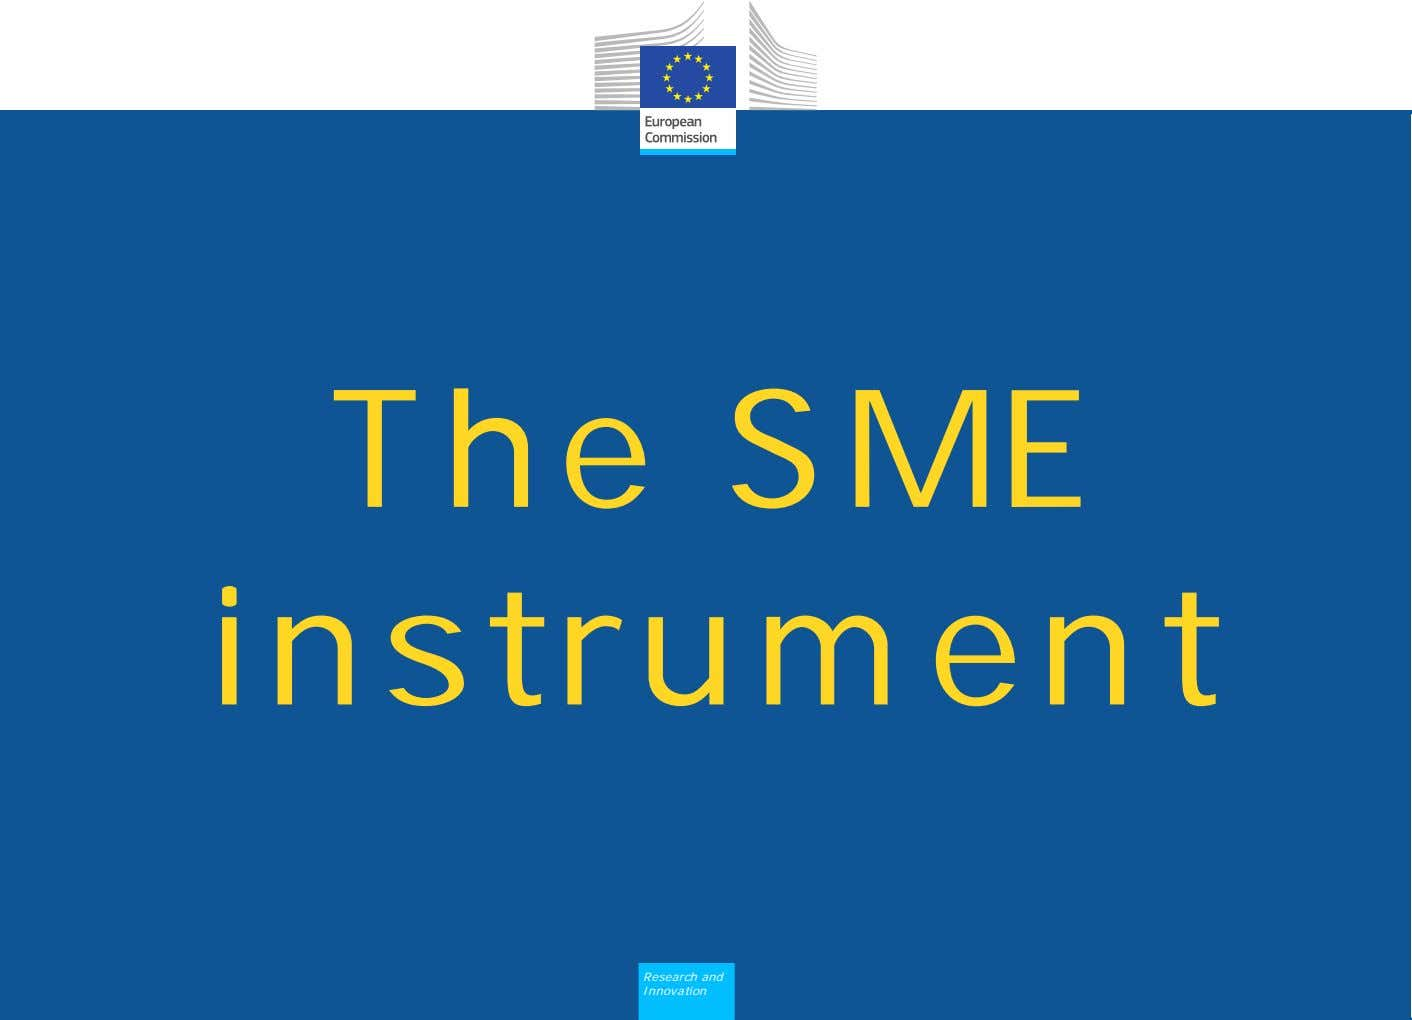 The SME instrument Research and Innovation